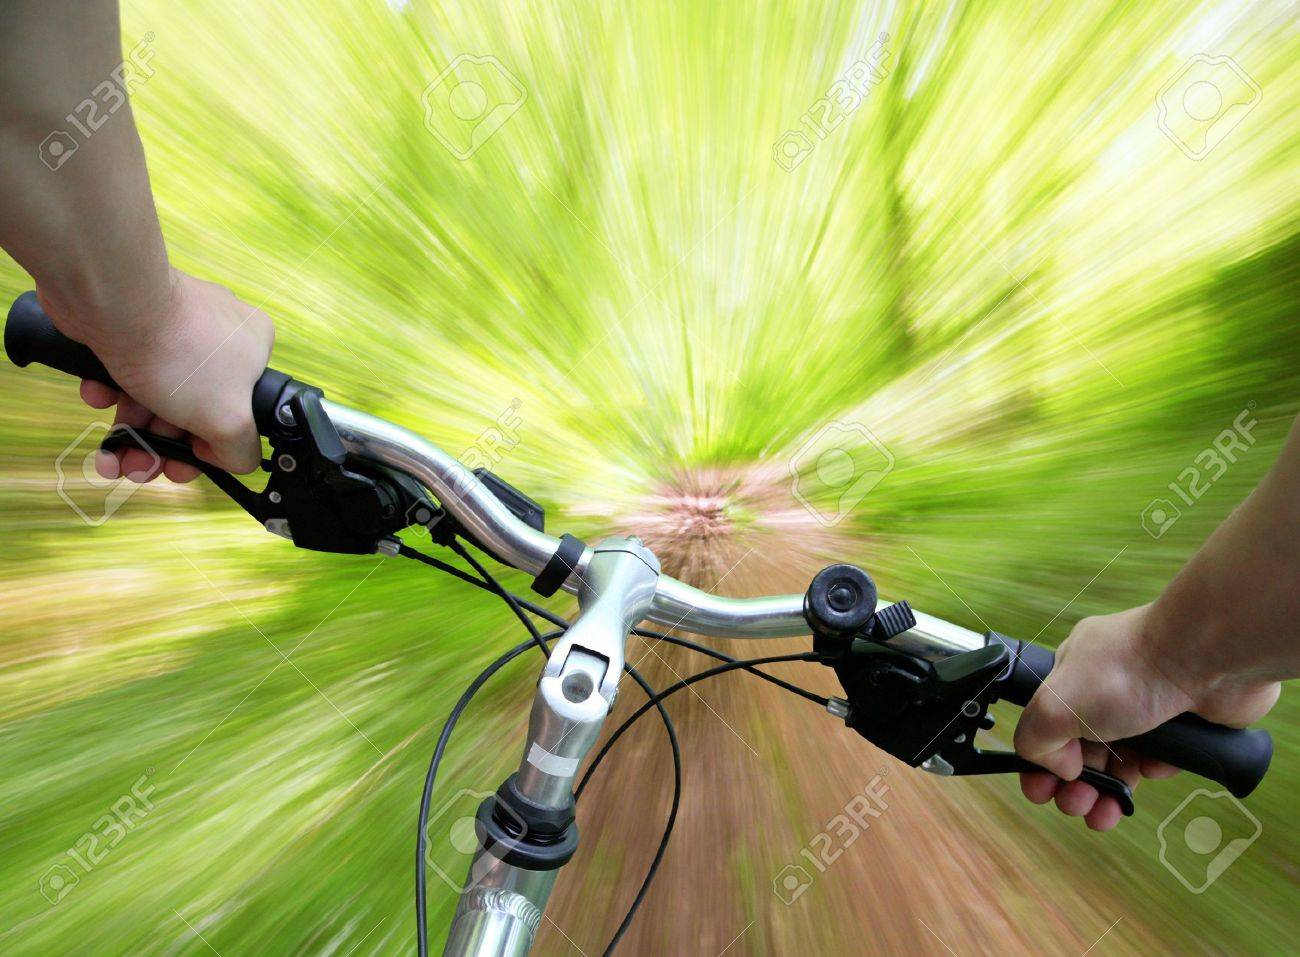 Mountain biking down the trail, descending fast, subjective point of view Stock Photo - 3109589